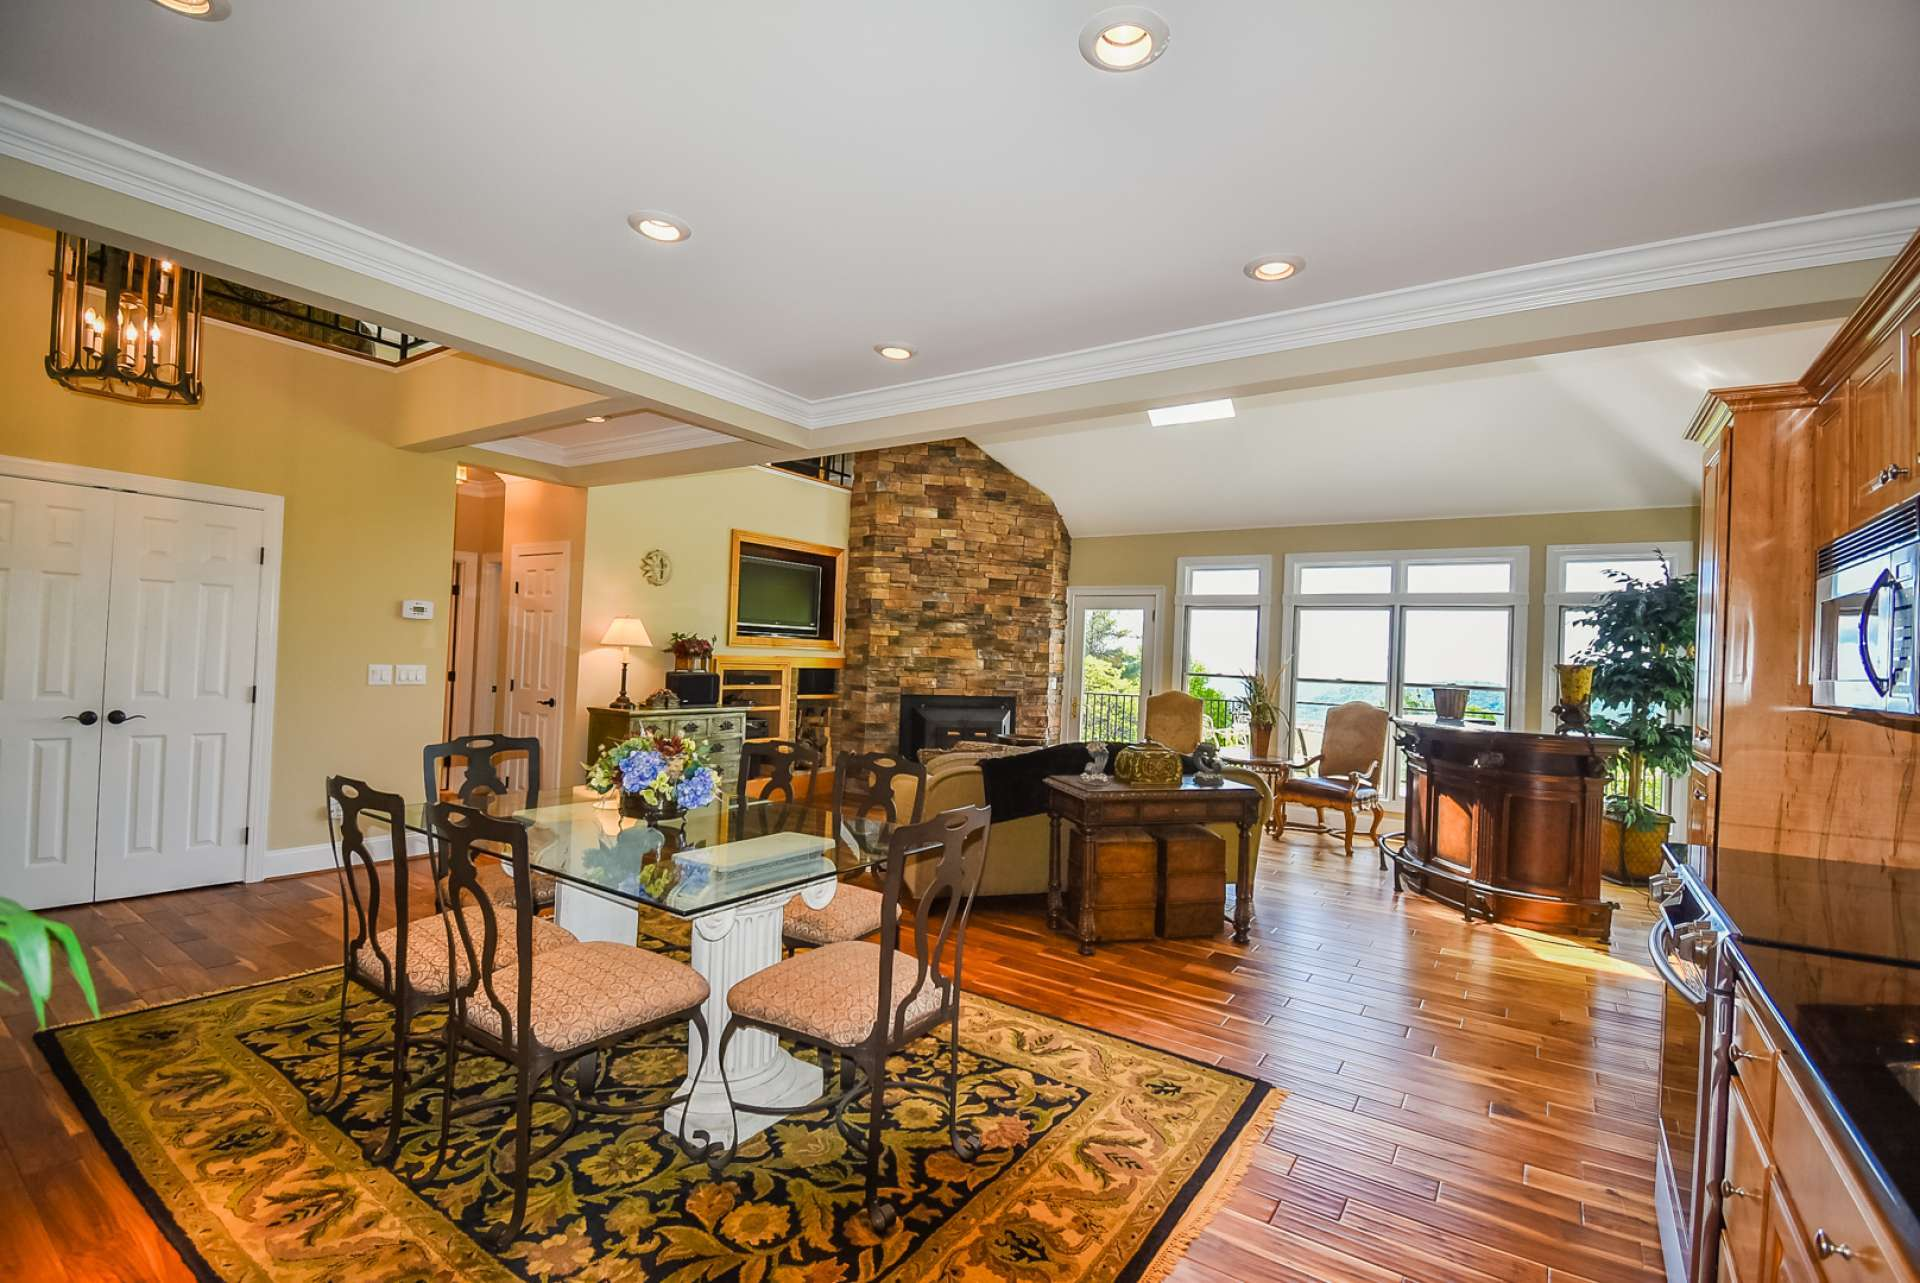 The open floor plan is perfect for entertaining.